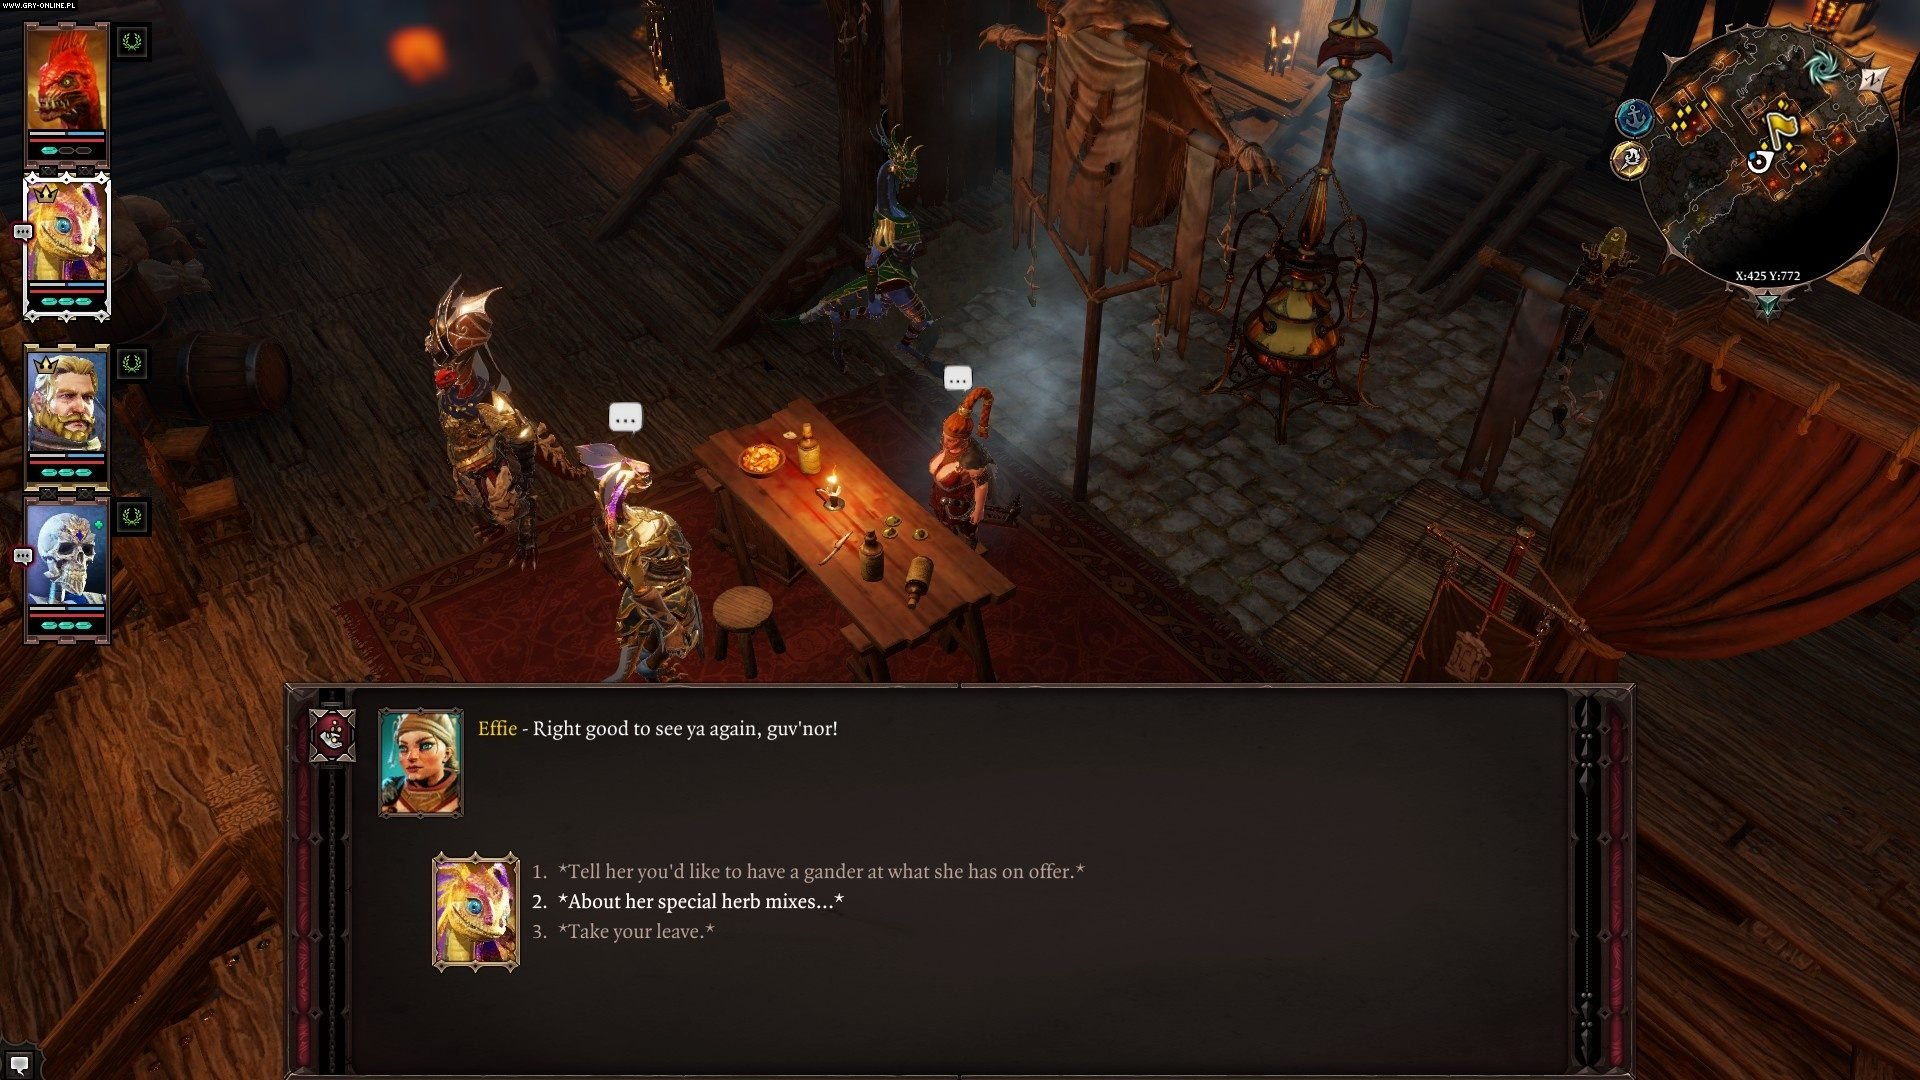 Divinity: Original Sin II - Definitive Edition PC, PS4, XONE Games Image 33/299, Larian Studios